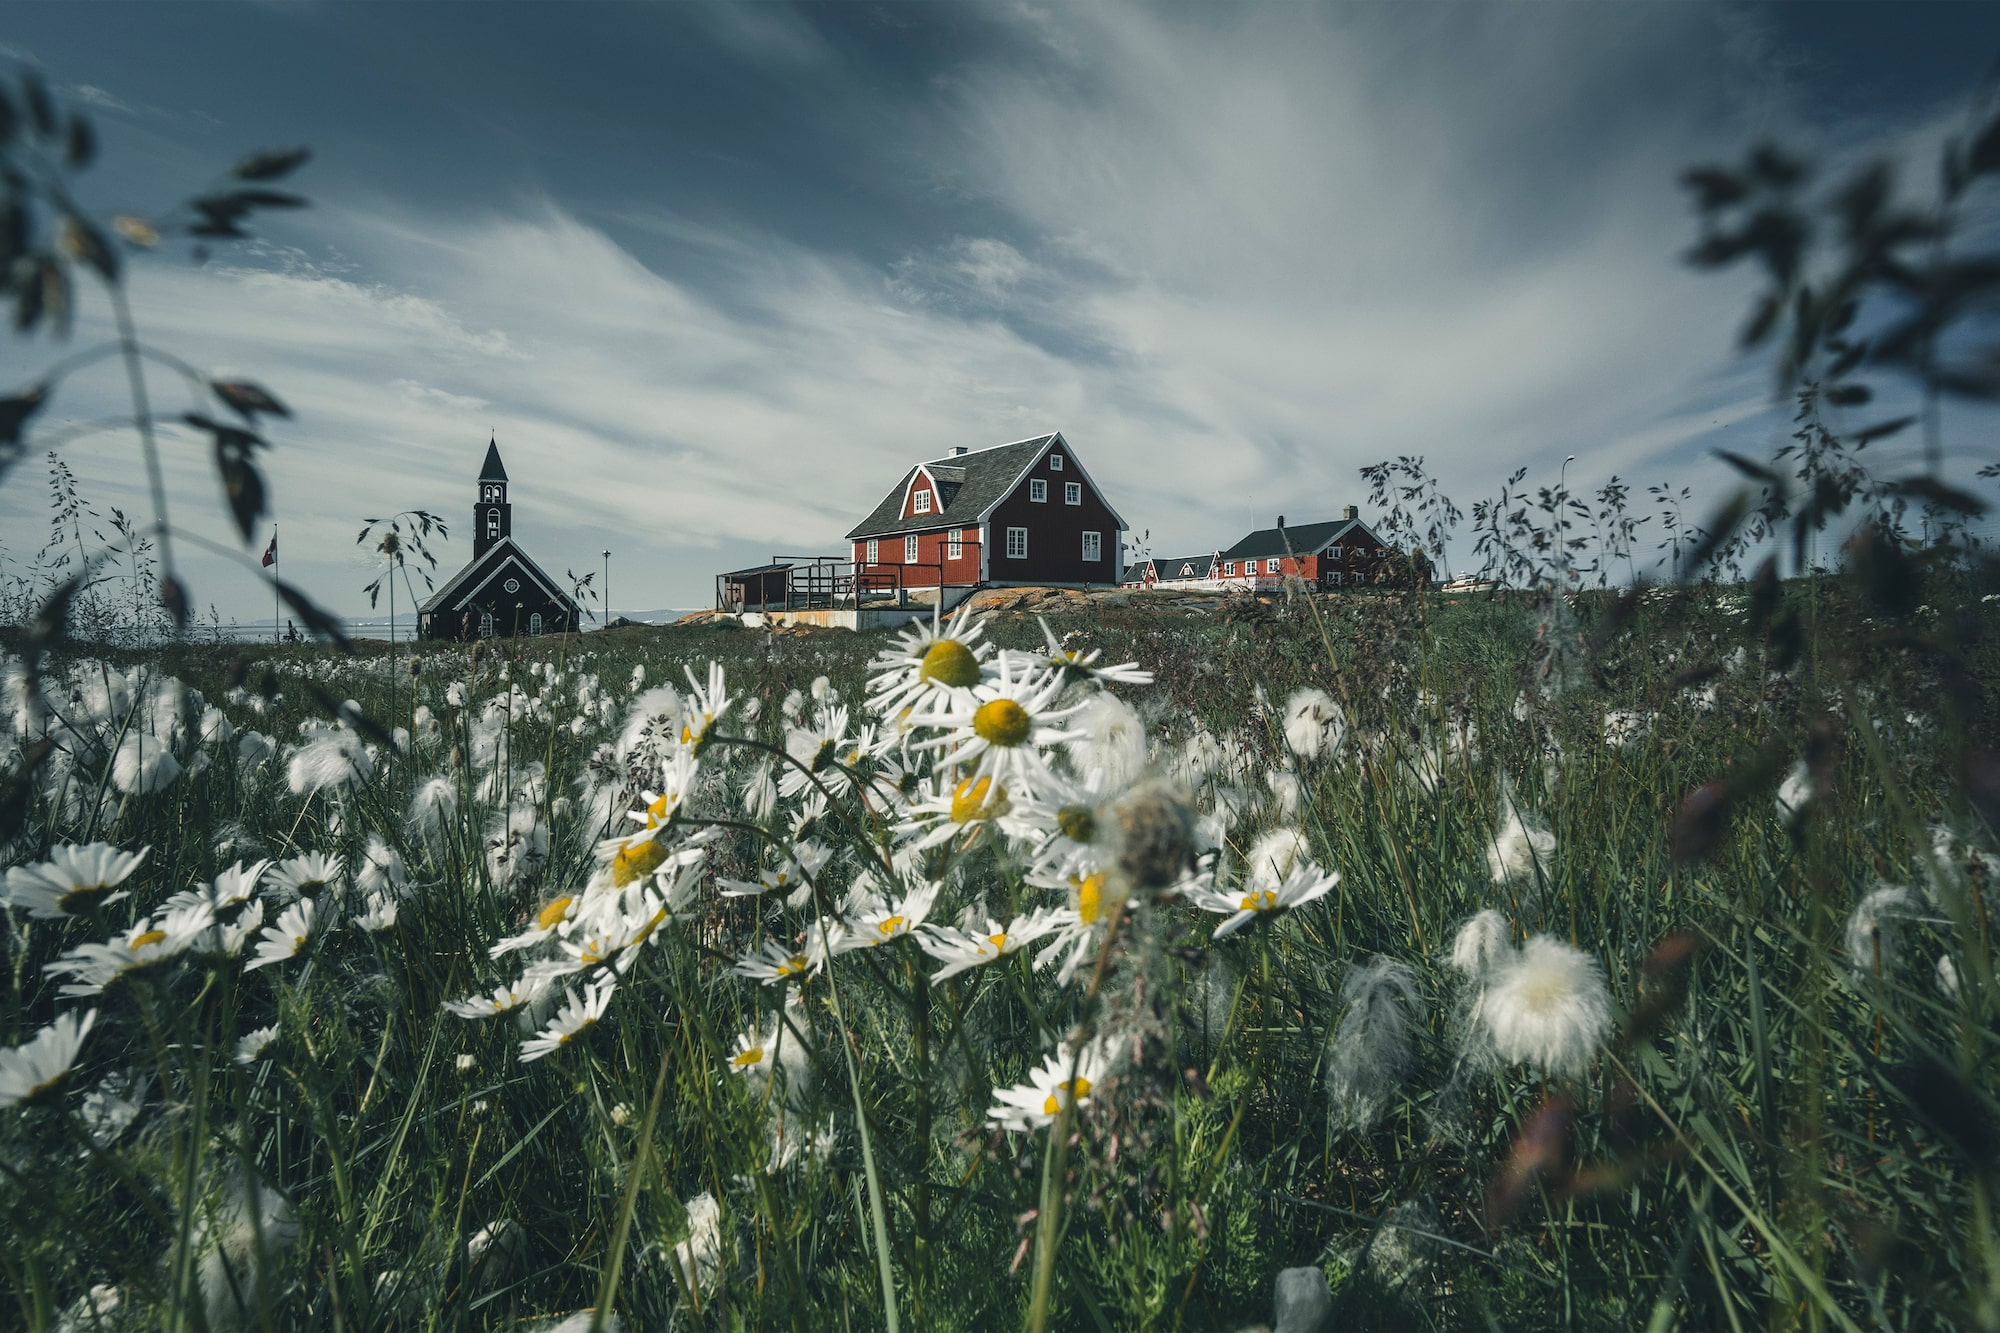 dennis schmelz sony alpha 6500 house in greenland surrounded by flowers